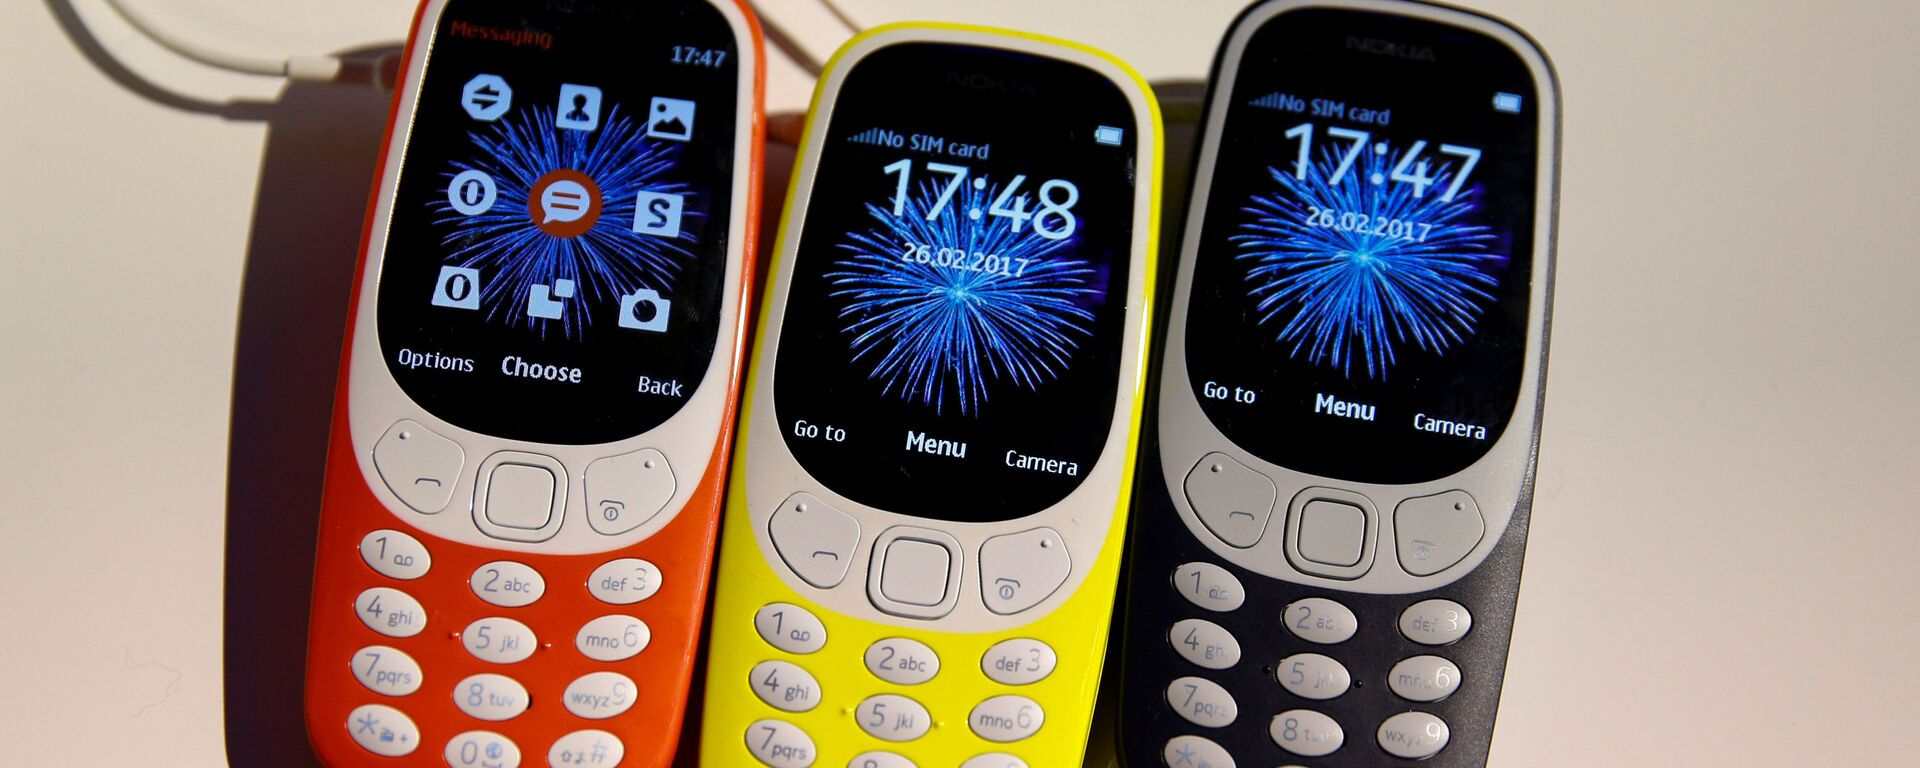 Nokia 3310 devices are displayed after their presentation ceremony at Mobile World Congress in Barcelona, Spain, February 26, 2017. - Sputnik Mundo, 1920, 08.08.2021